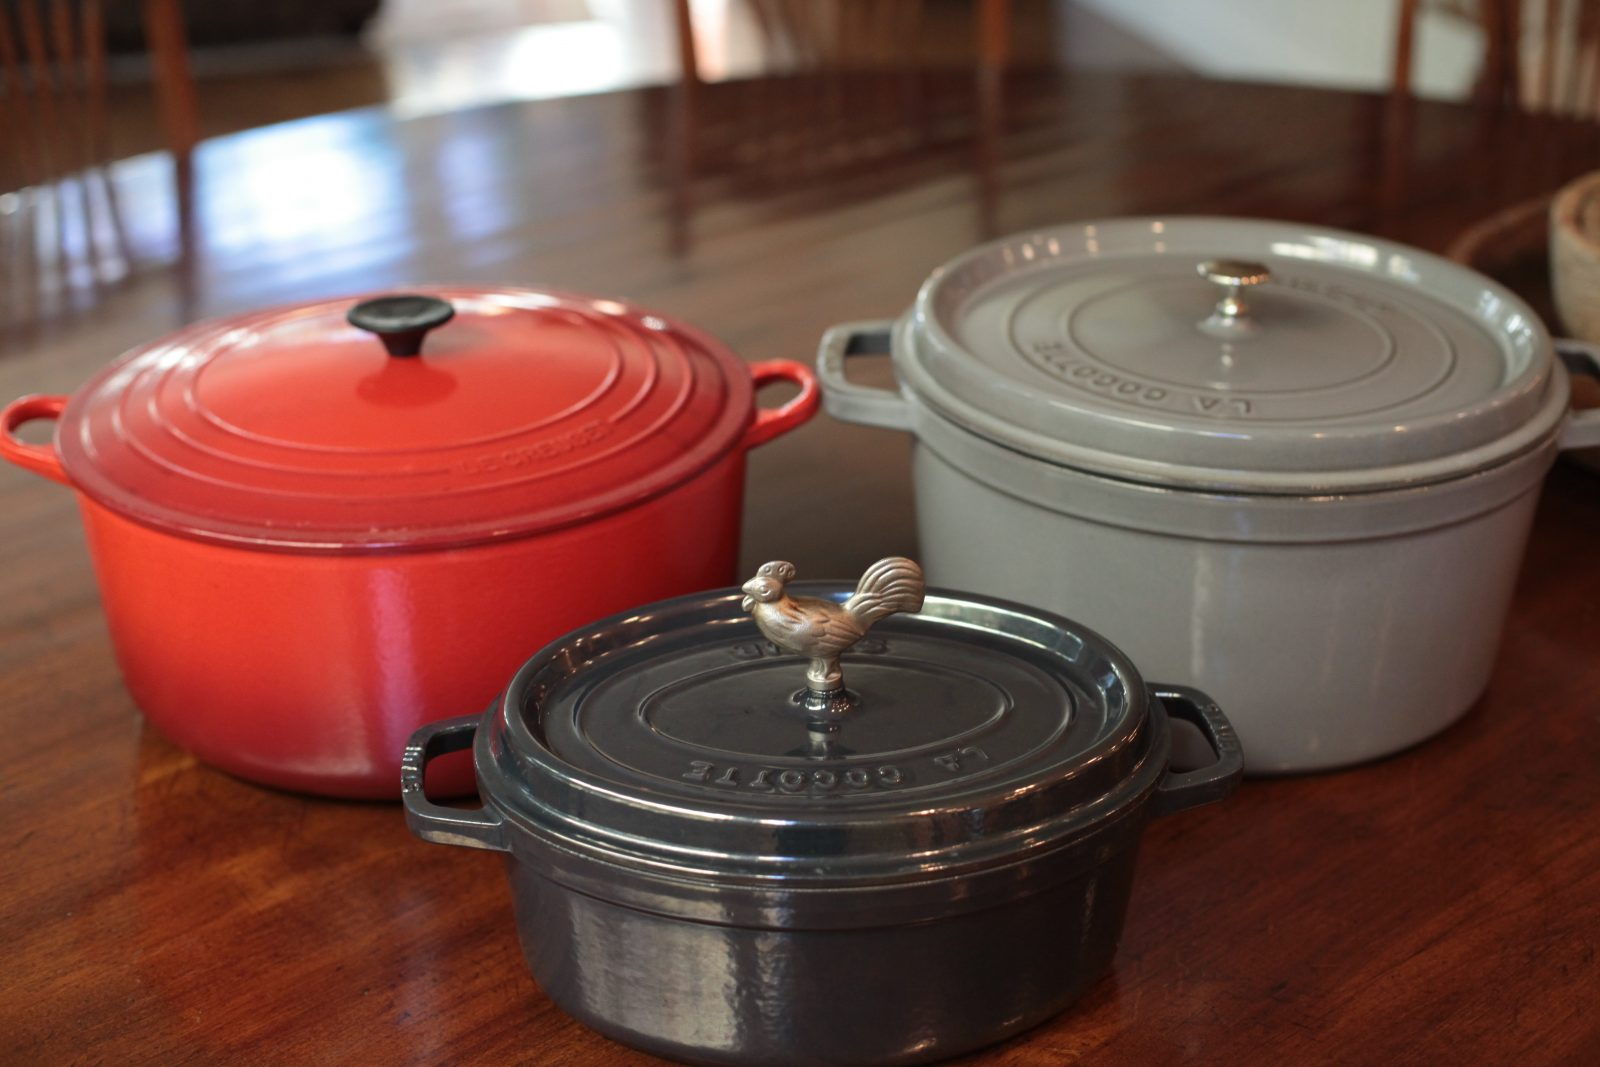 Ing A Cast Iron French Oven Pot Is No Small Investment The Top Brands On Market Are Le Creuset And Staub As You Can See Here I Have Both